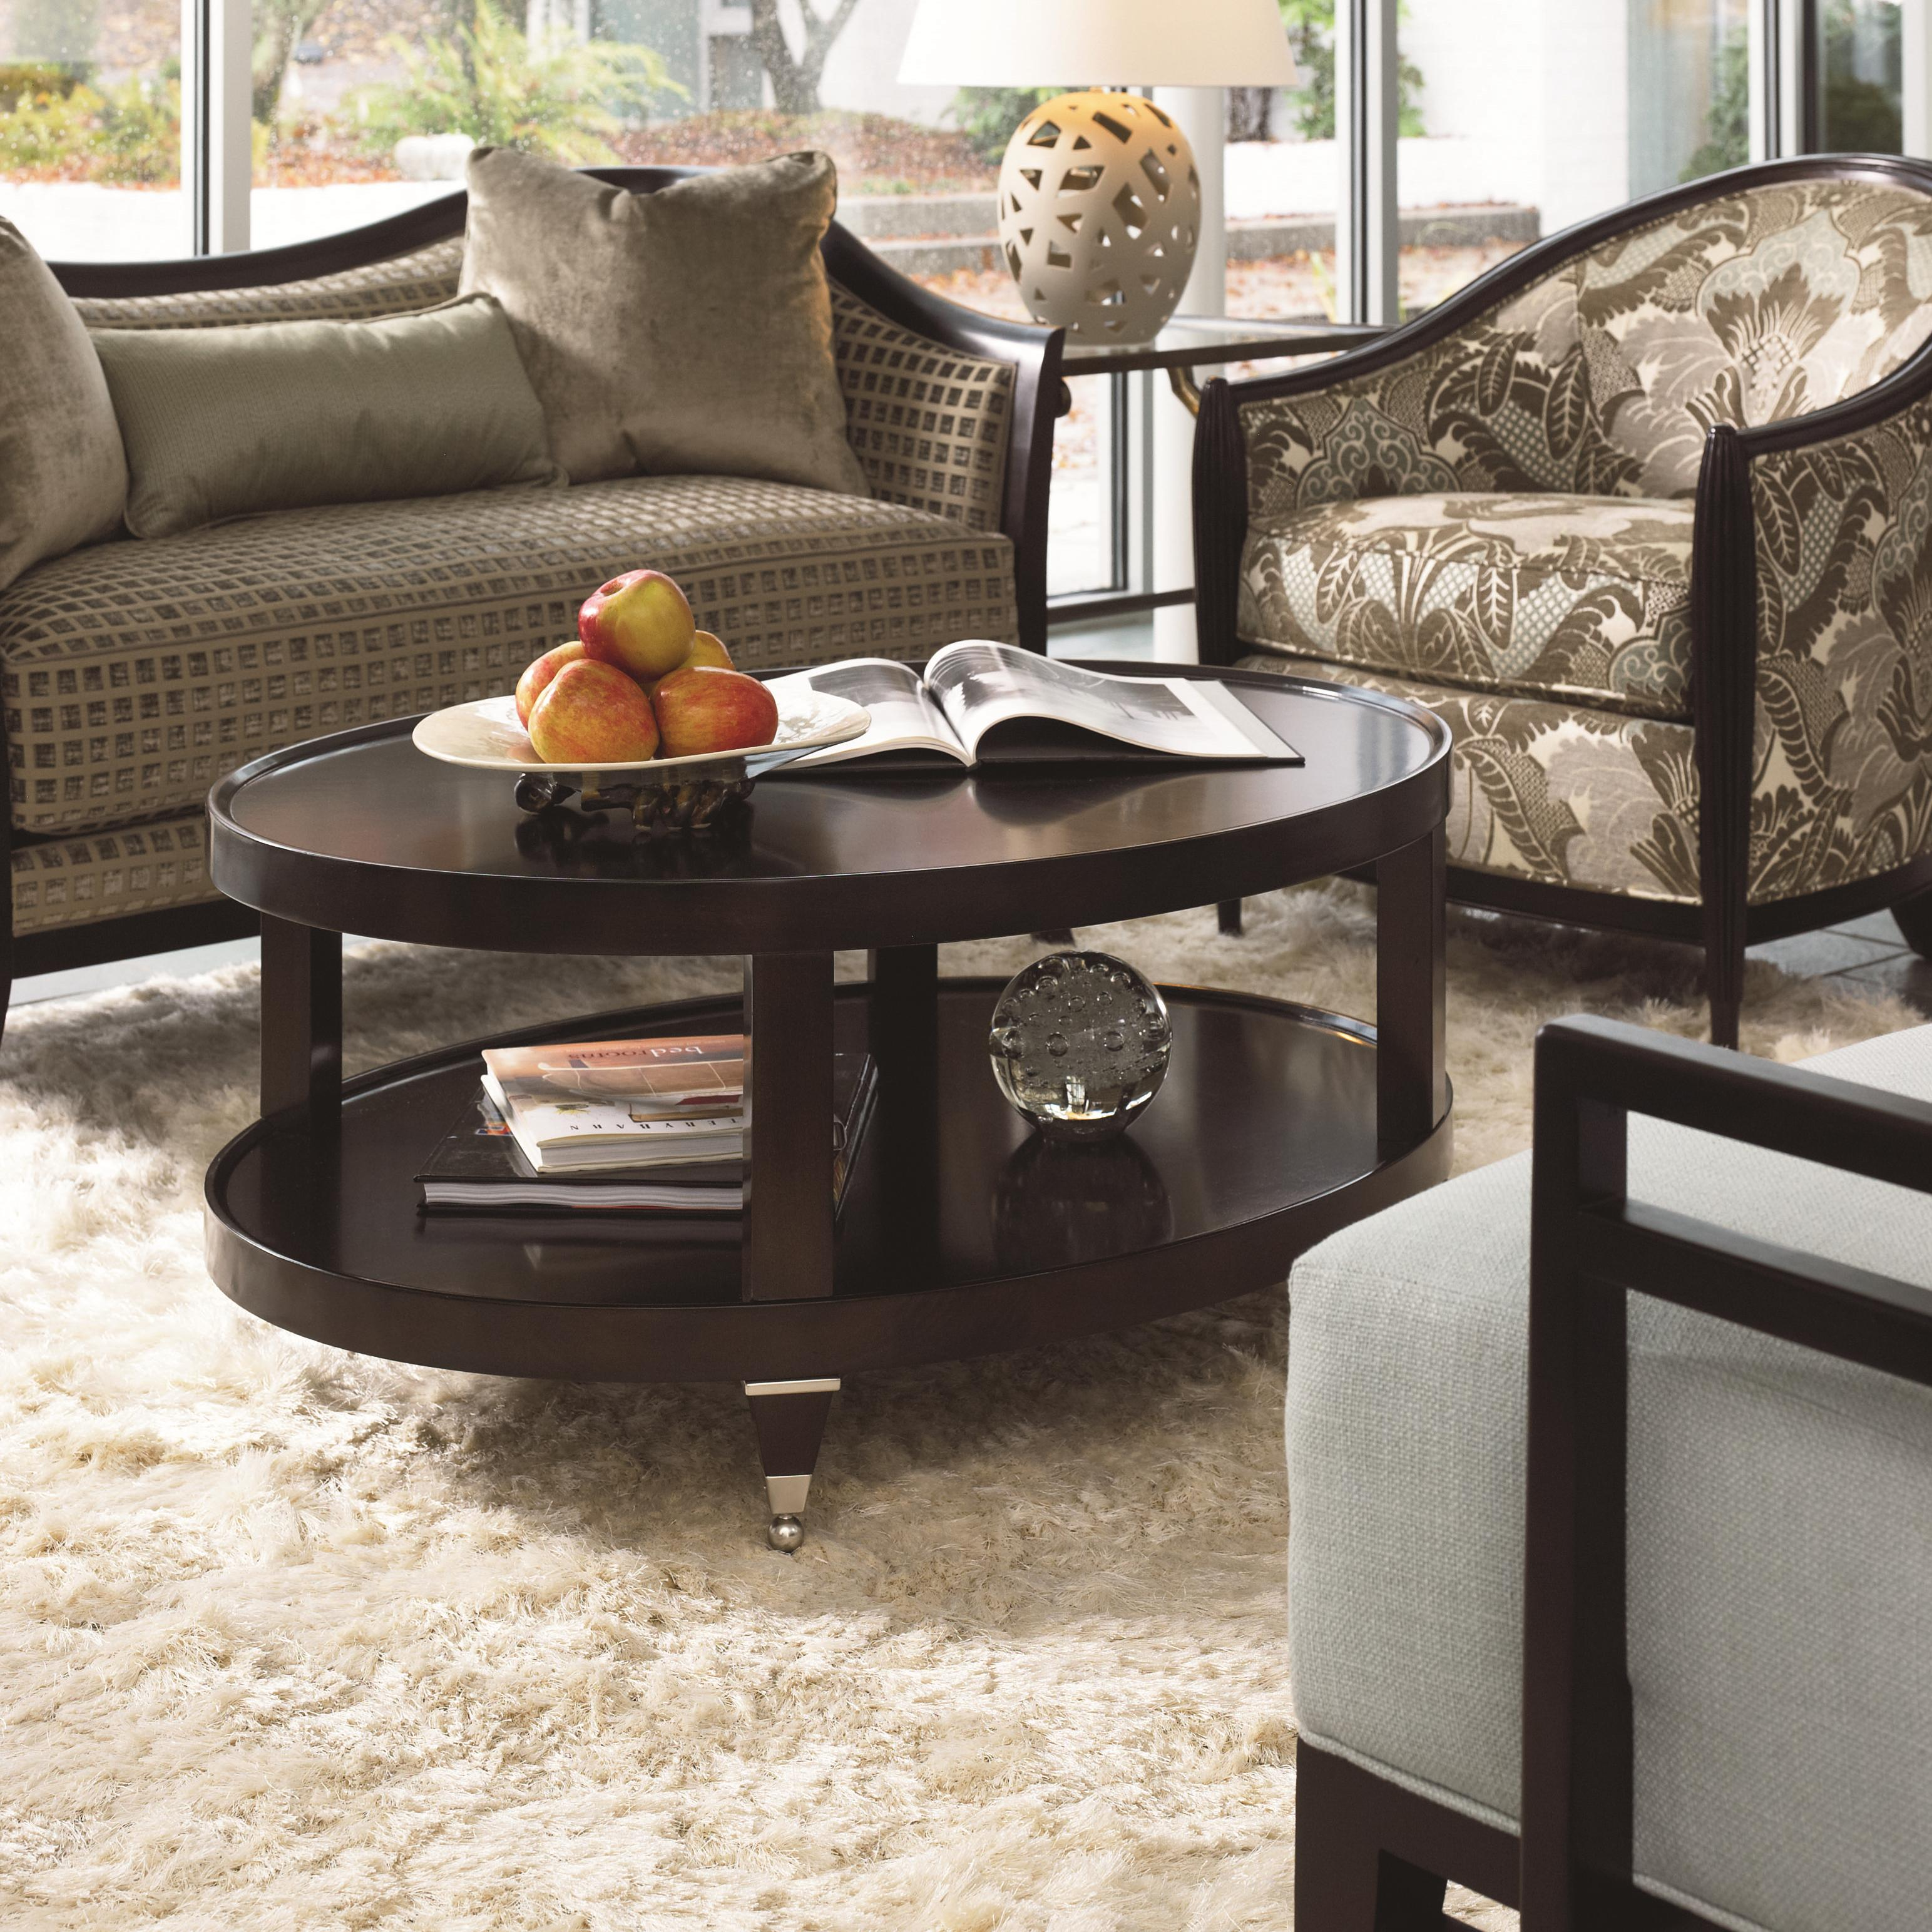 Thomasville® Spellbound Oval Cocktail Table - Item Number: 82231-140